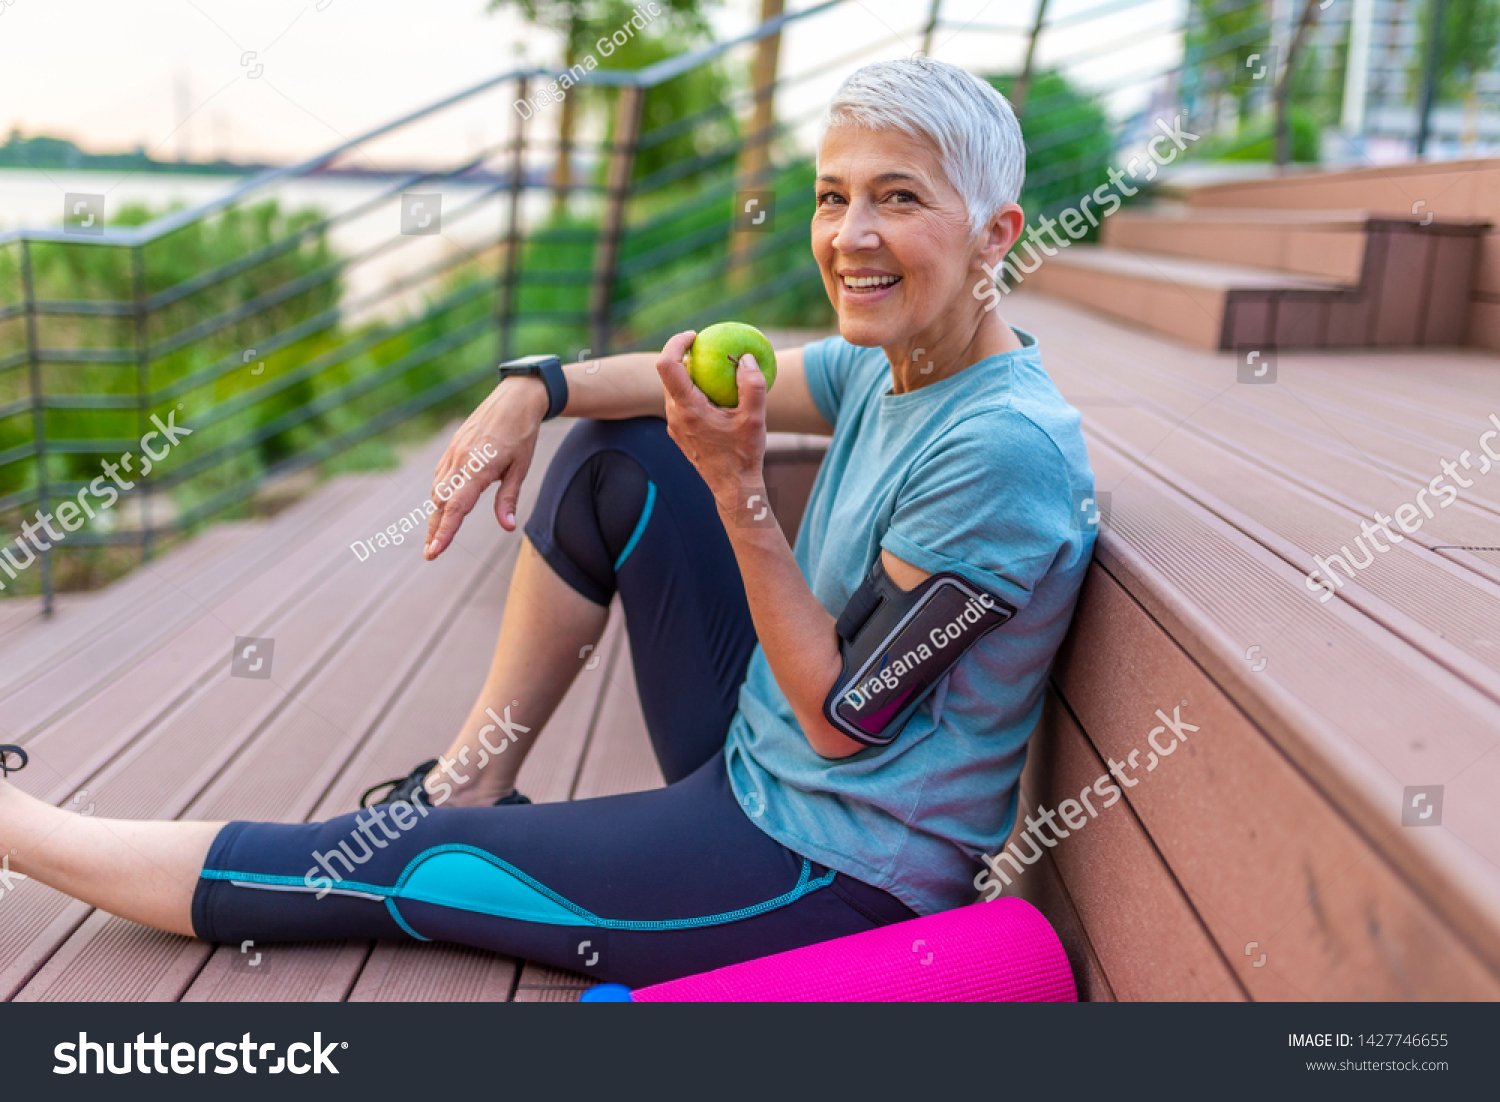 Sporty woman eating apple. Beautiful woman with gray hair in the early sixties relaxing after sport training. Healthy Age. Mature athletic woman eating an apple after sports training  #1427746655